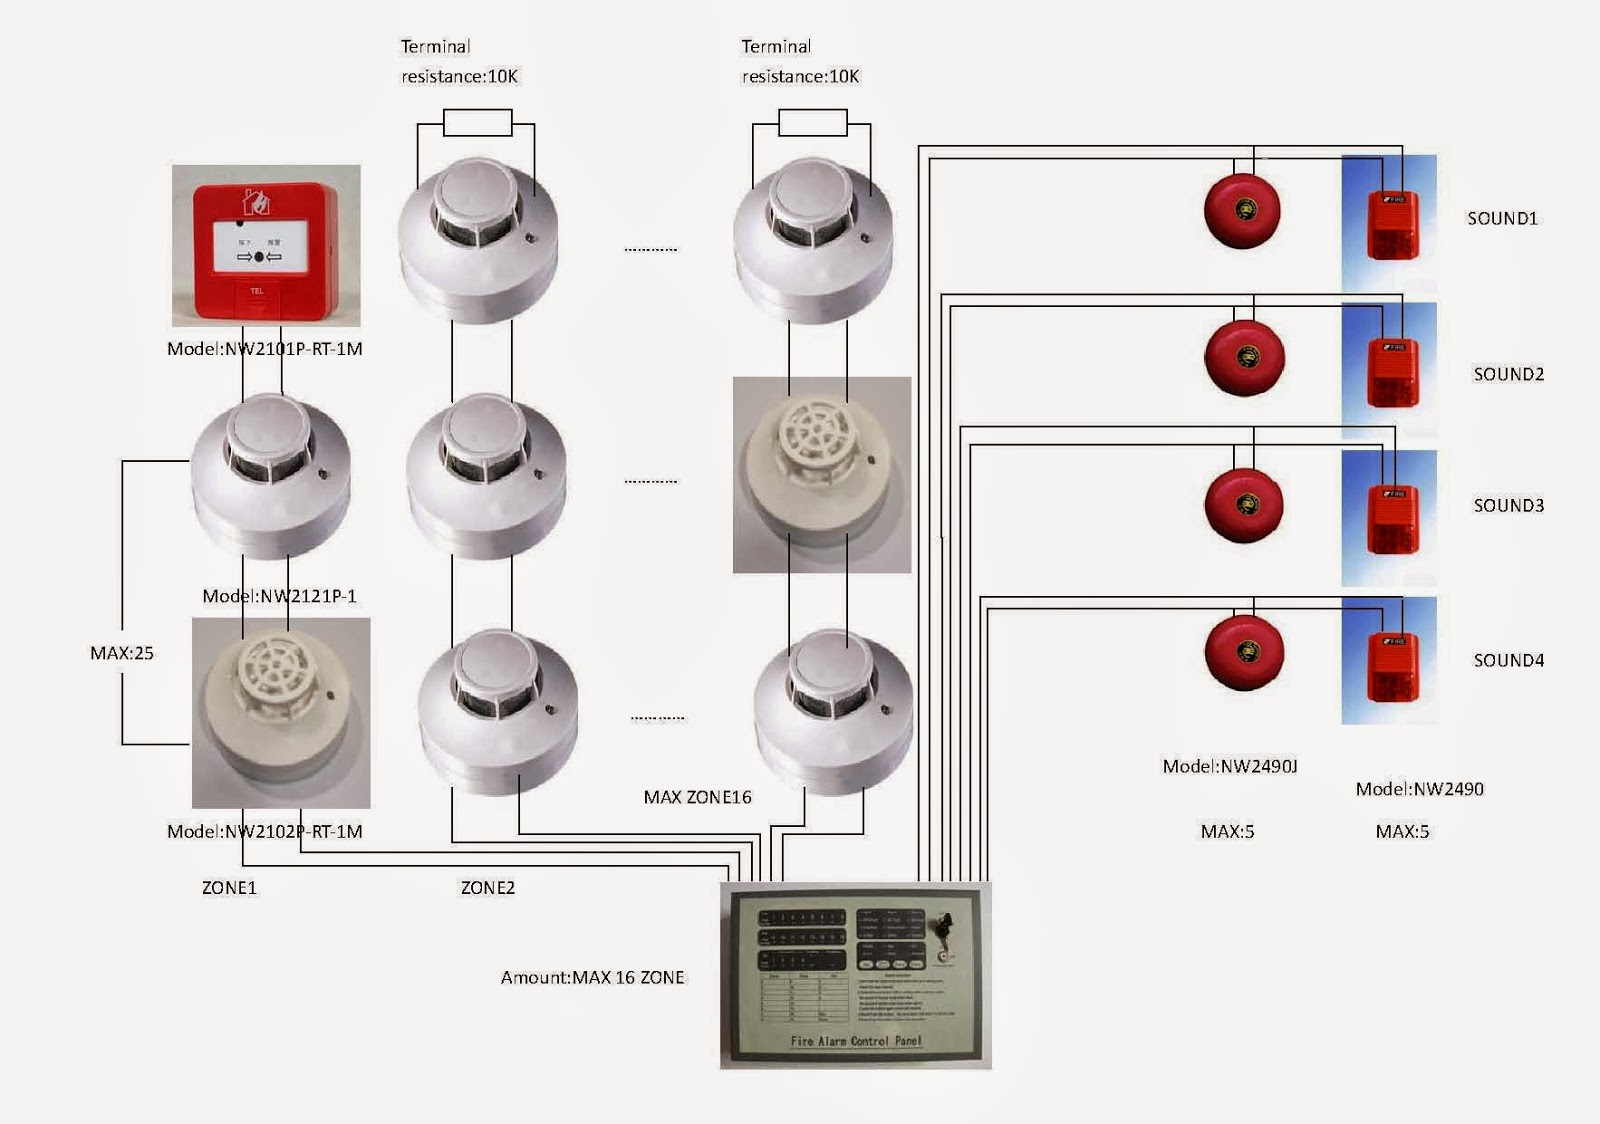 Wiring A Smoke Alarm Diagram on simplex fire alarm wiring diagrams